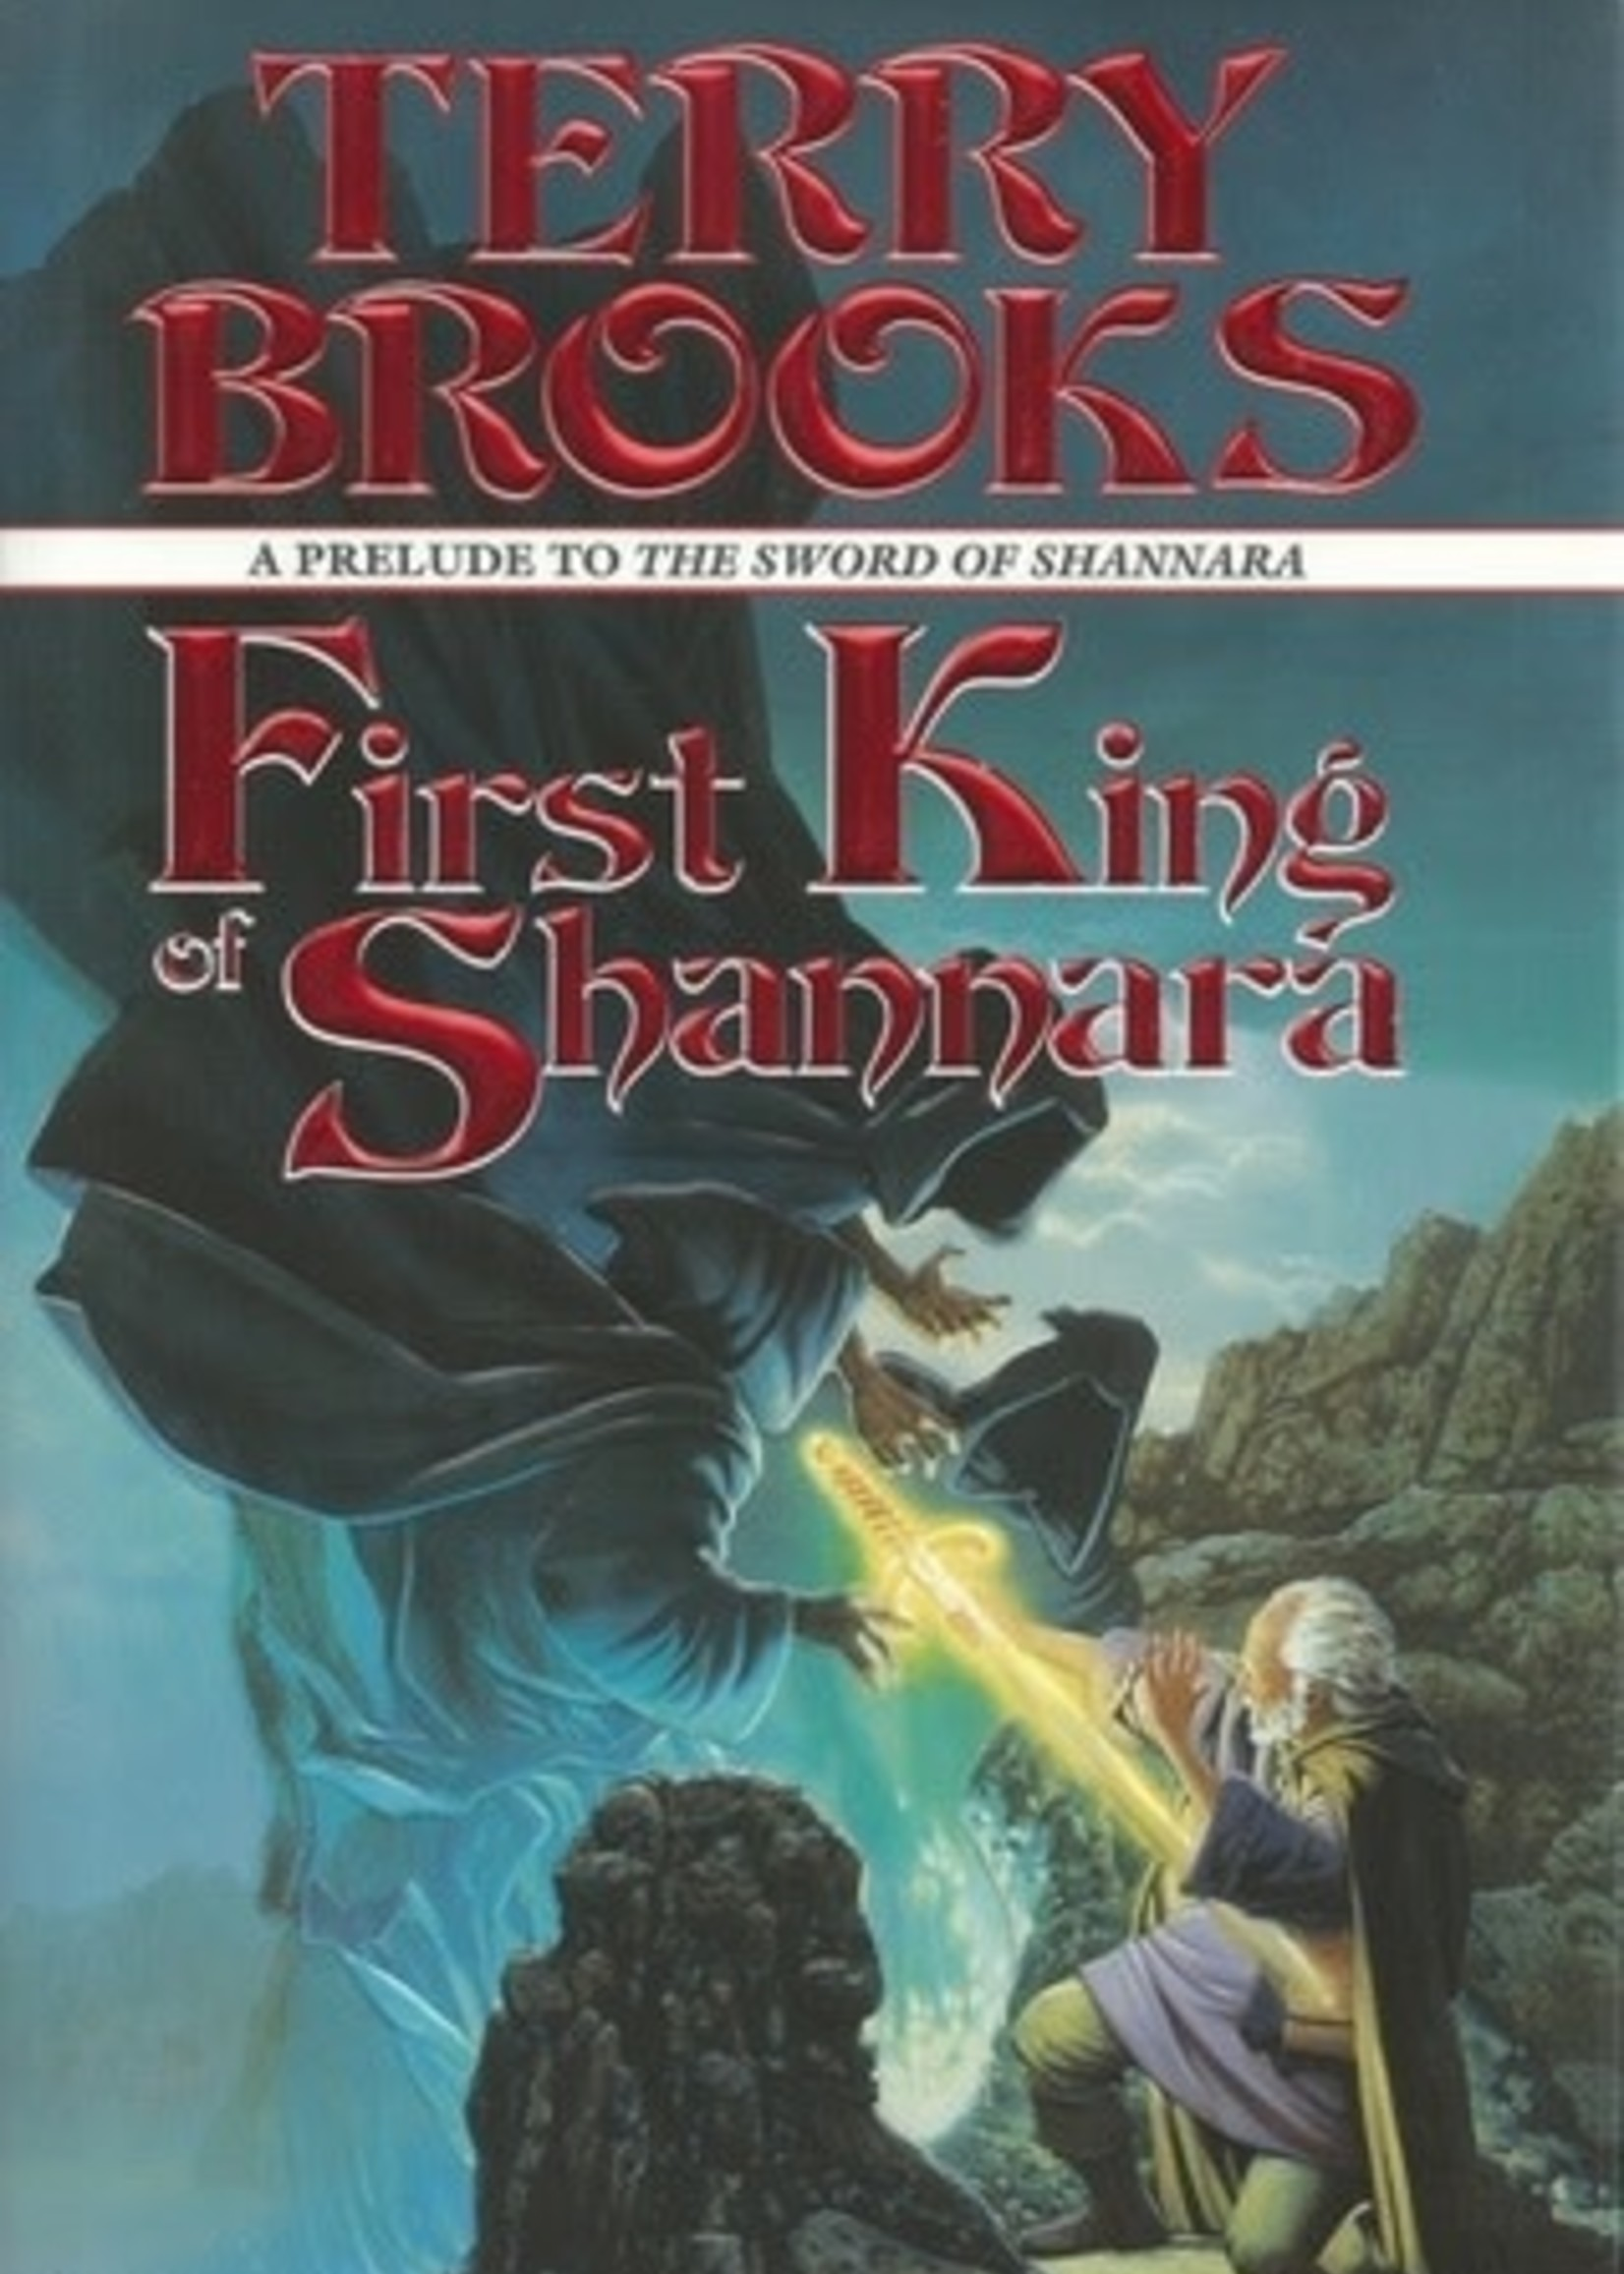 USED - The First King of Shannara by Terry Brooks